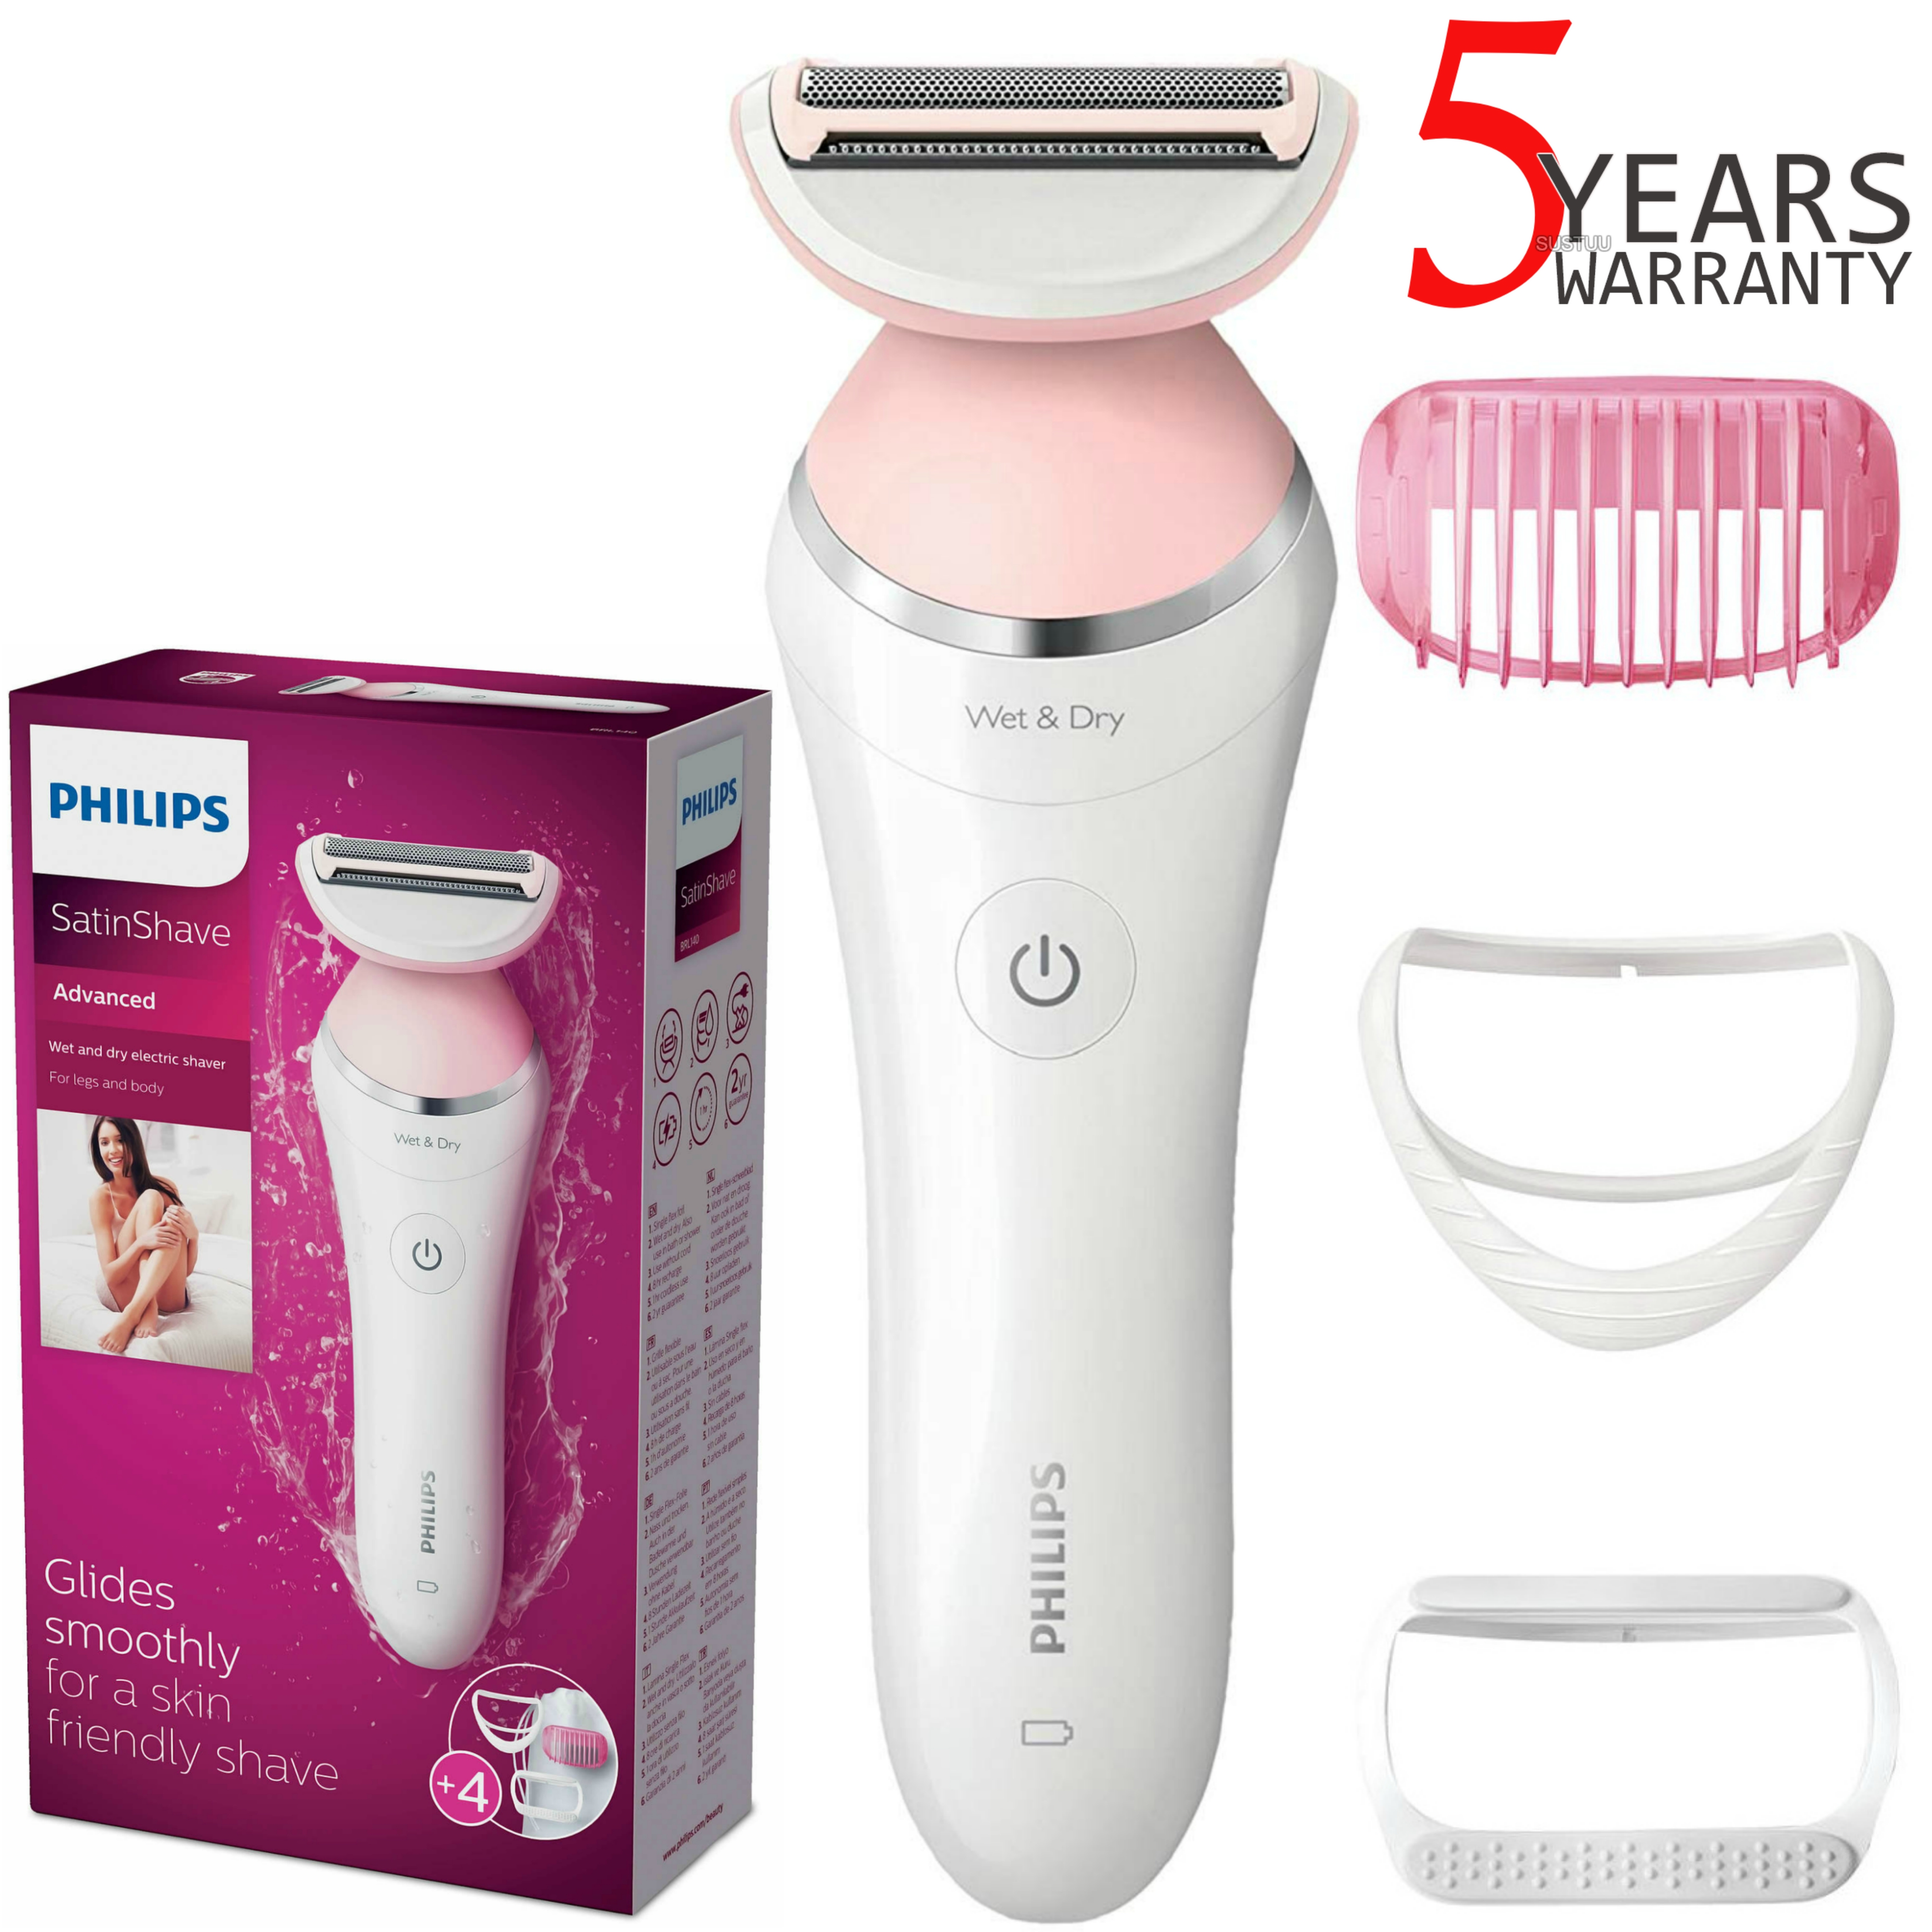 Philips SatinShave Advanced Lady Shaver Hair Removal | Wet/Dry | Rechargeable | BRL140